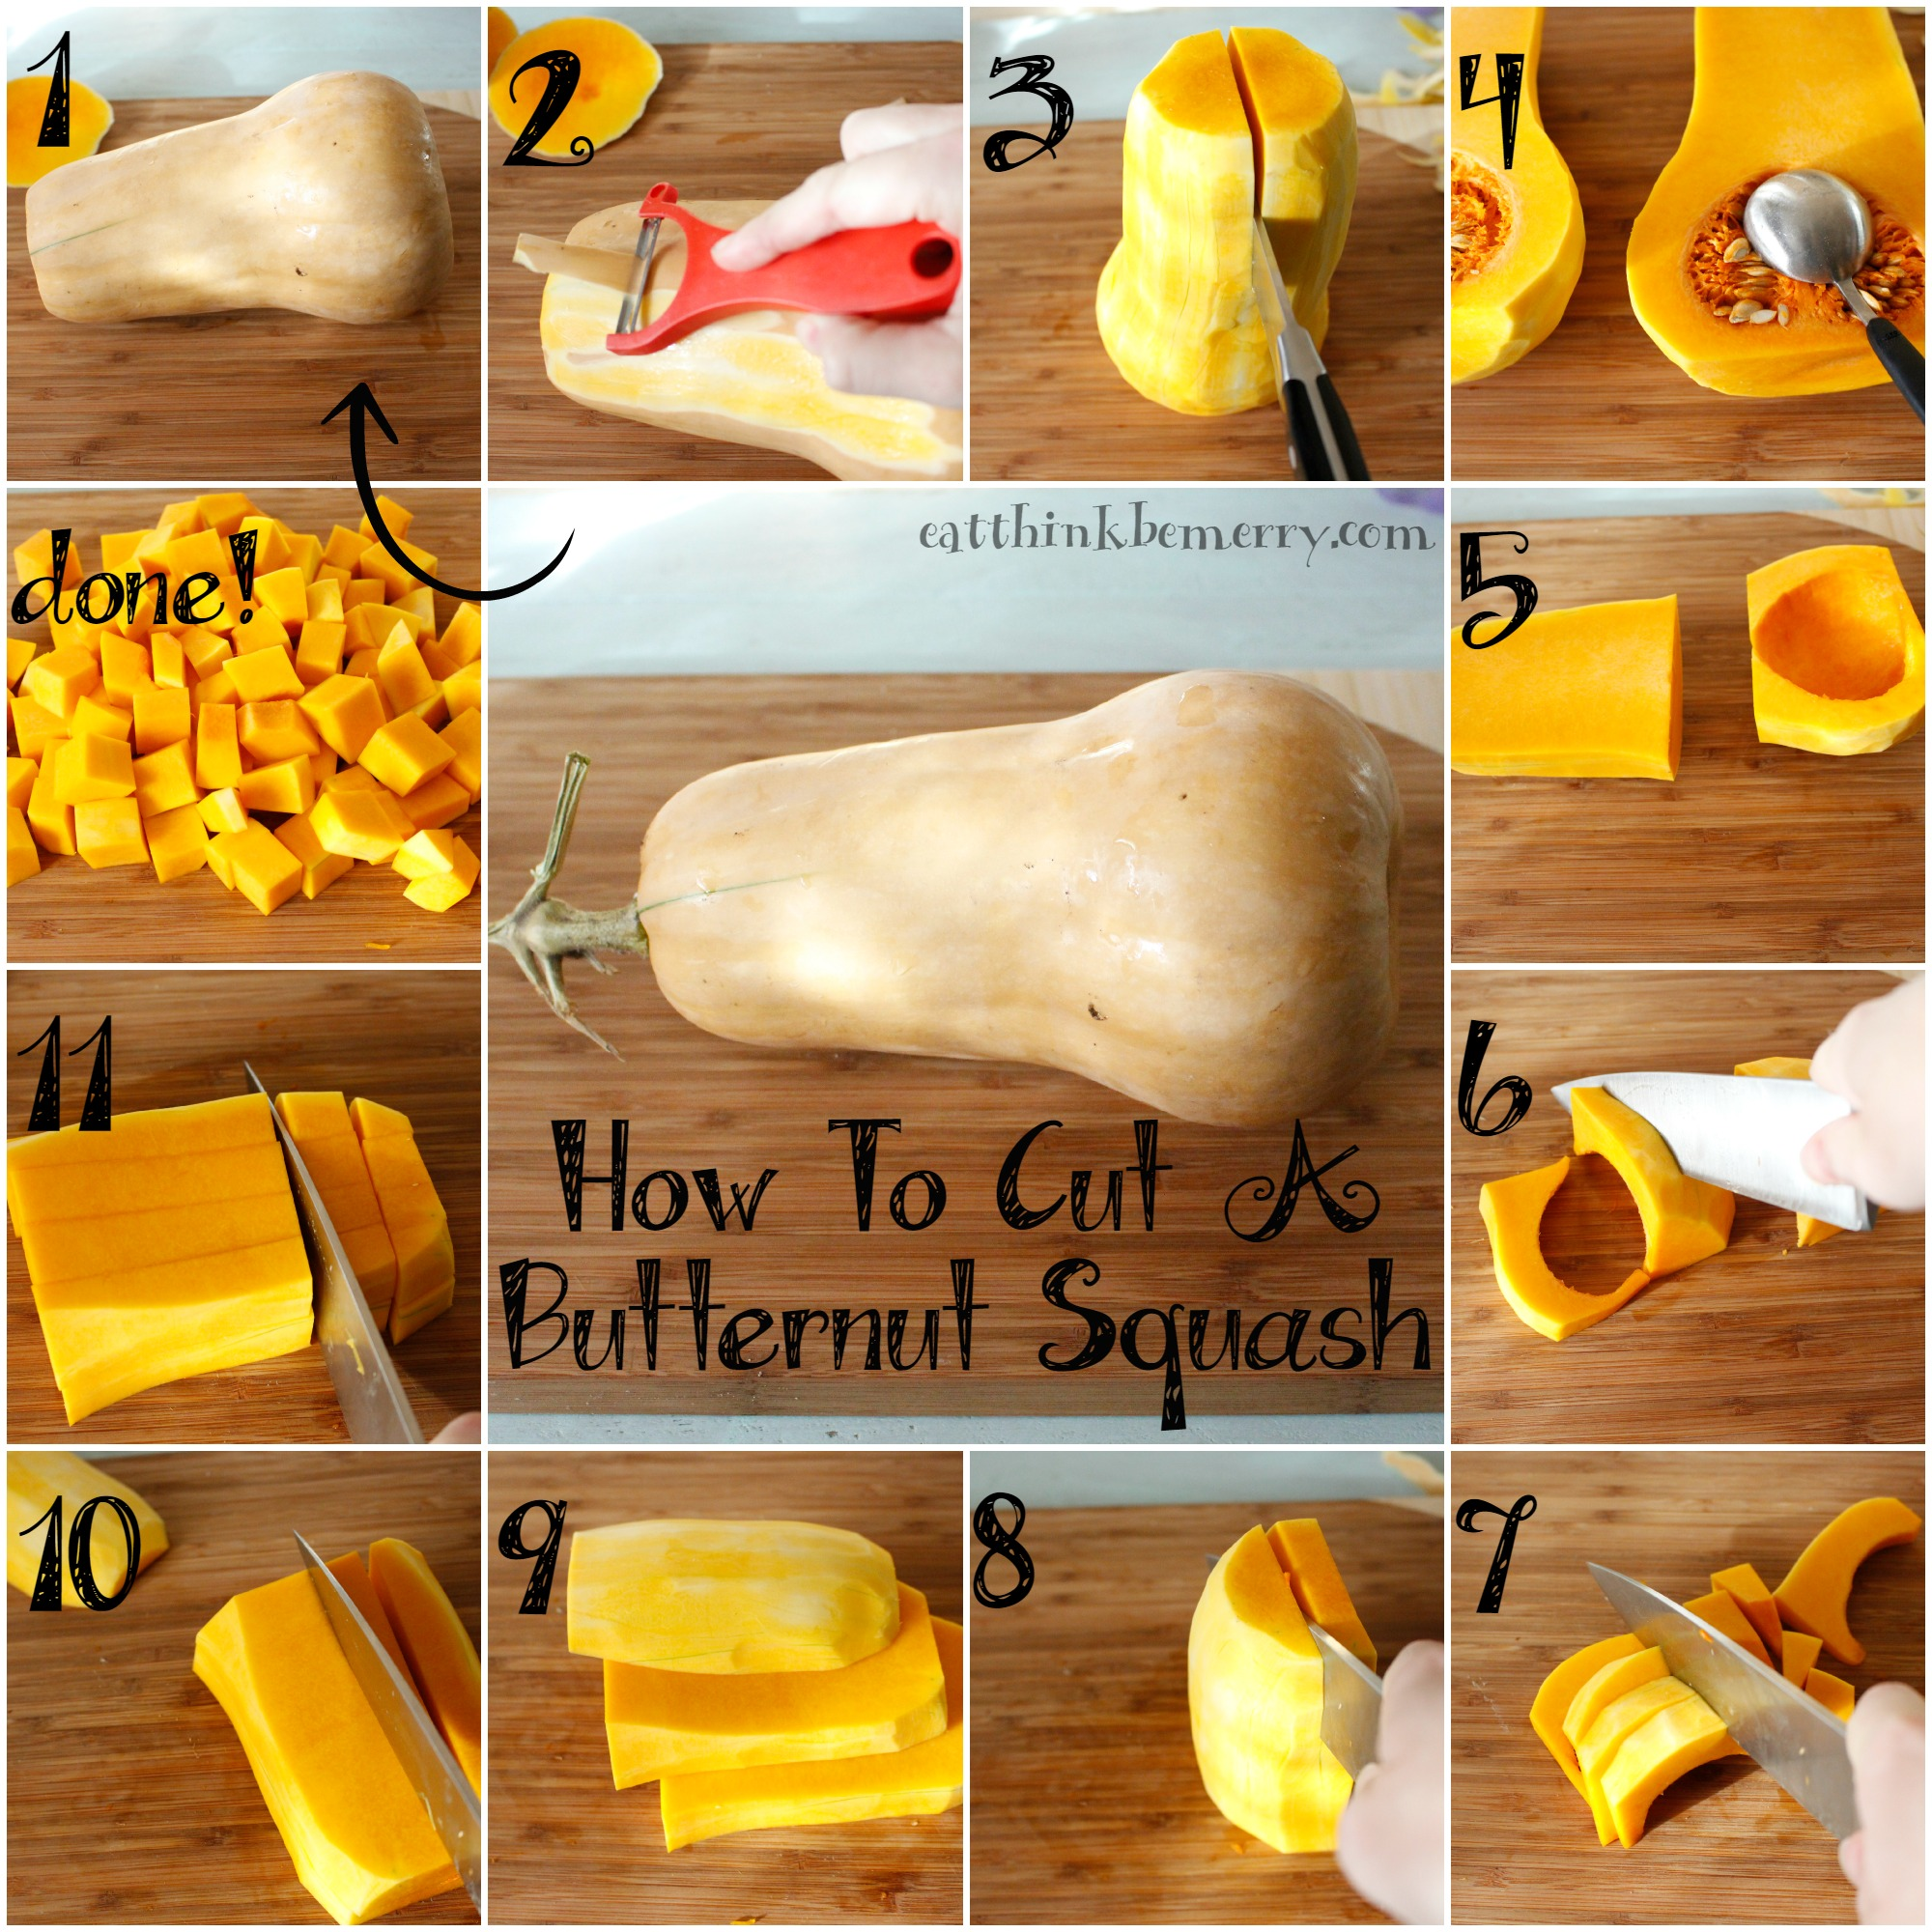 How to Cube Butternut Squash